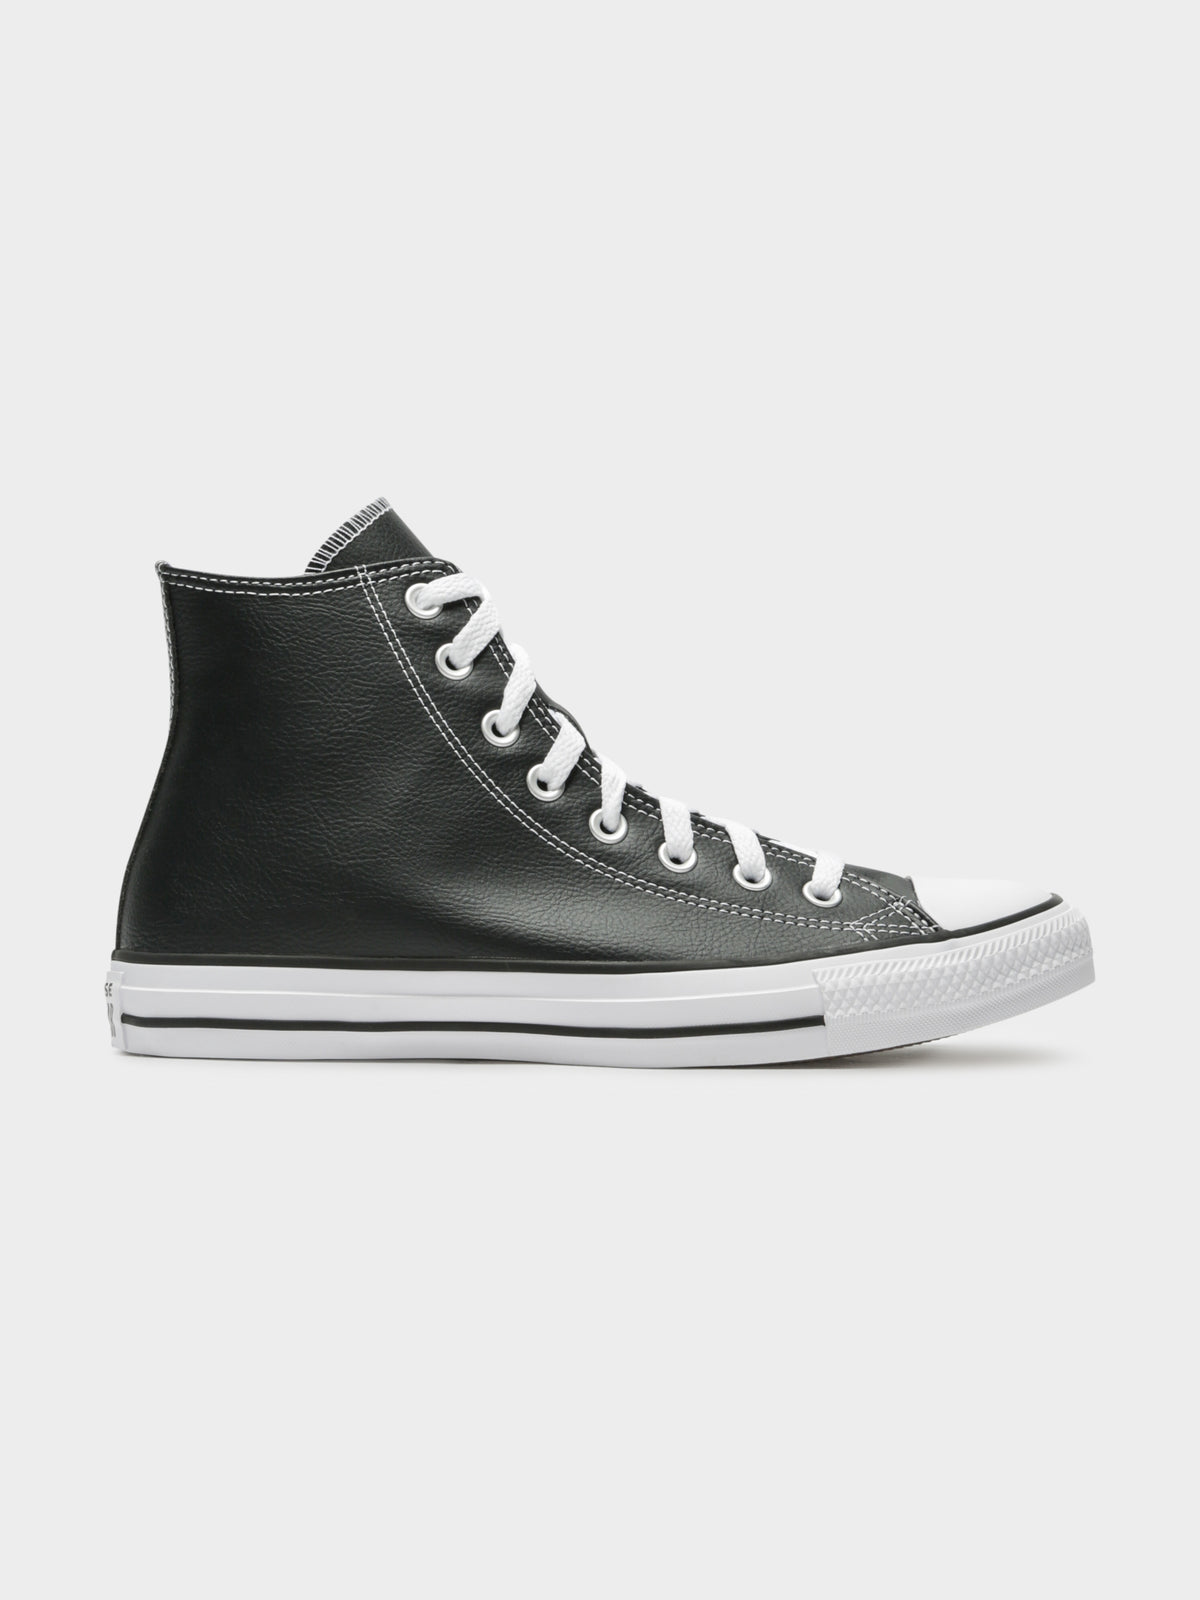 Unisex Chuck Taylor Hi All Star Leather Sneakers in Black & Purple